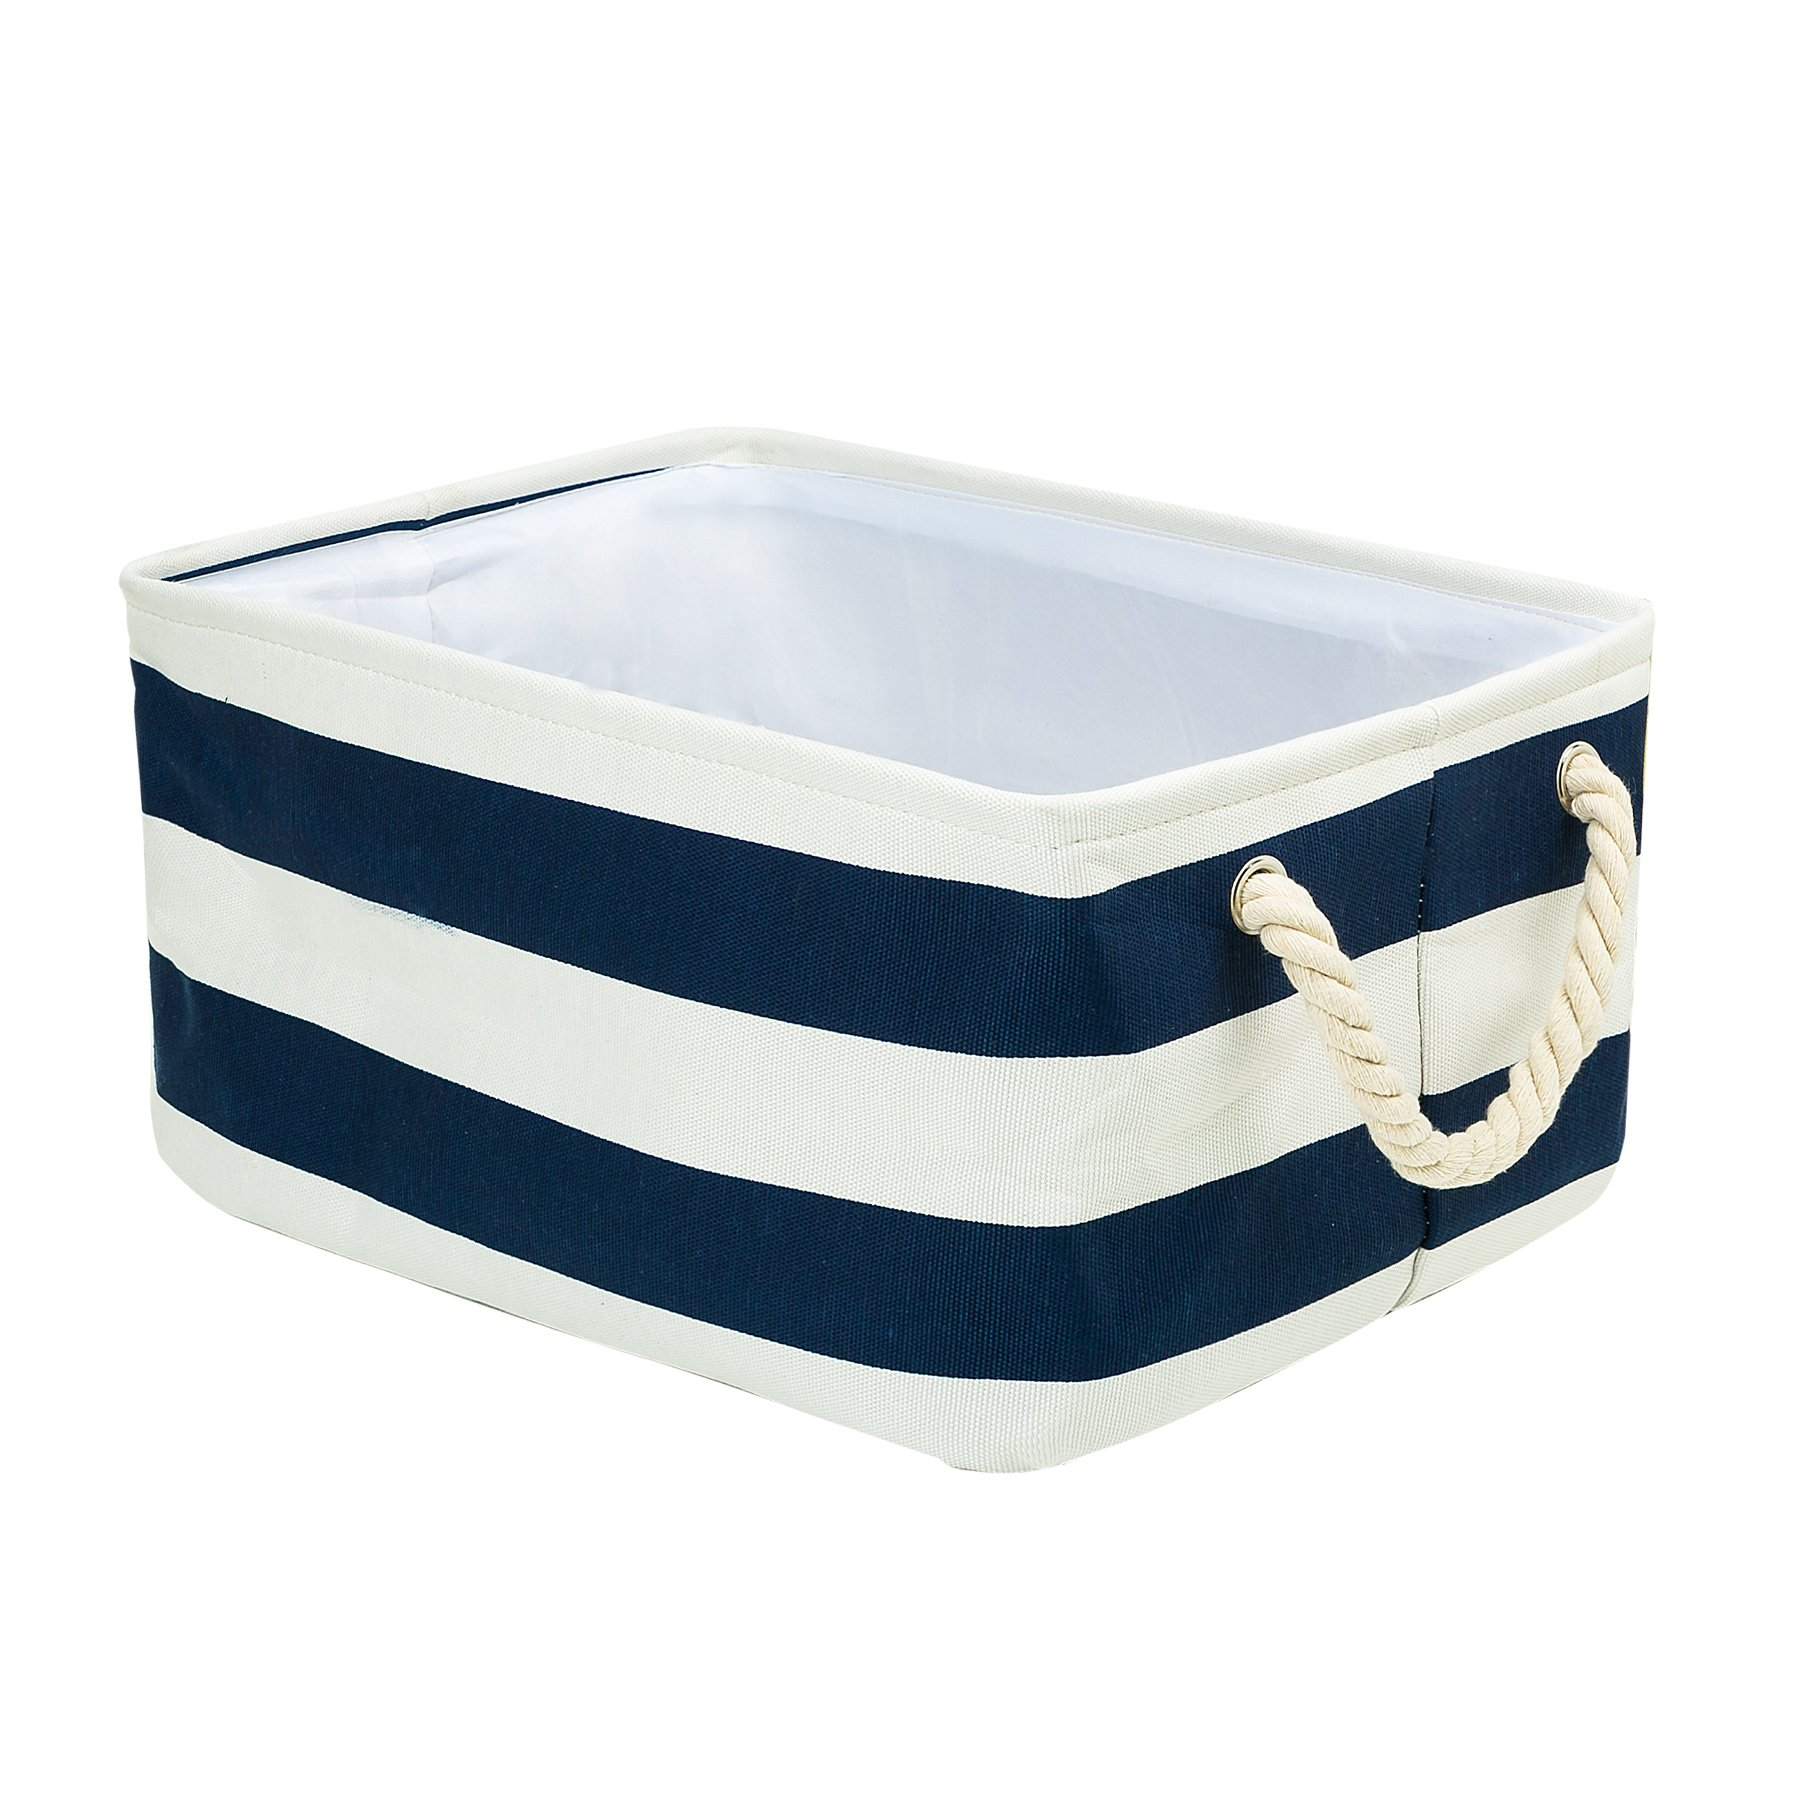 Storage Bin, Zonyon 15.7''L Rectangular Collapsible Linen Foldable Storage Container,Baby Basket,Hamper Organizer with Rope Handles for Boys,Girls,Kids,Toys,Office,Bedroom,Closet,Gift Basket,Blue